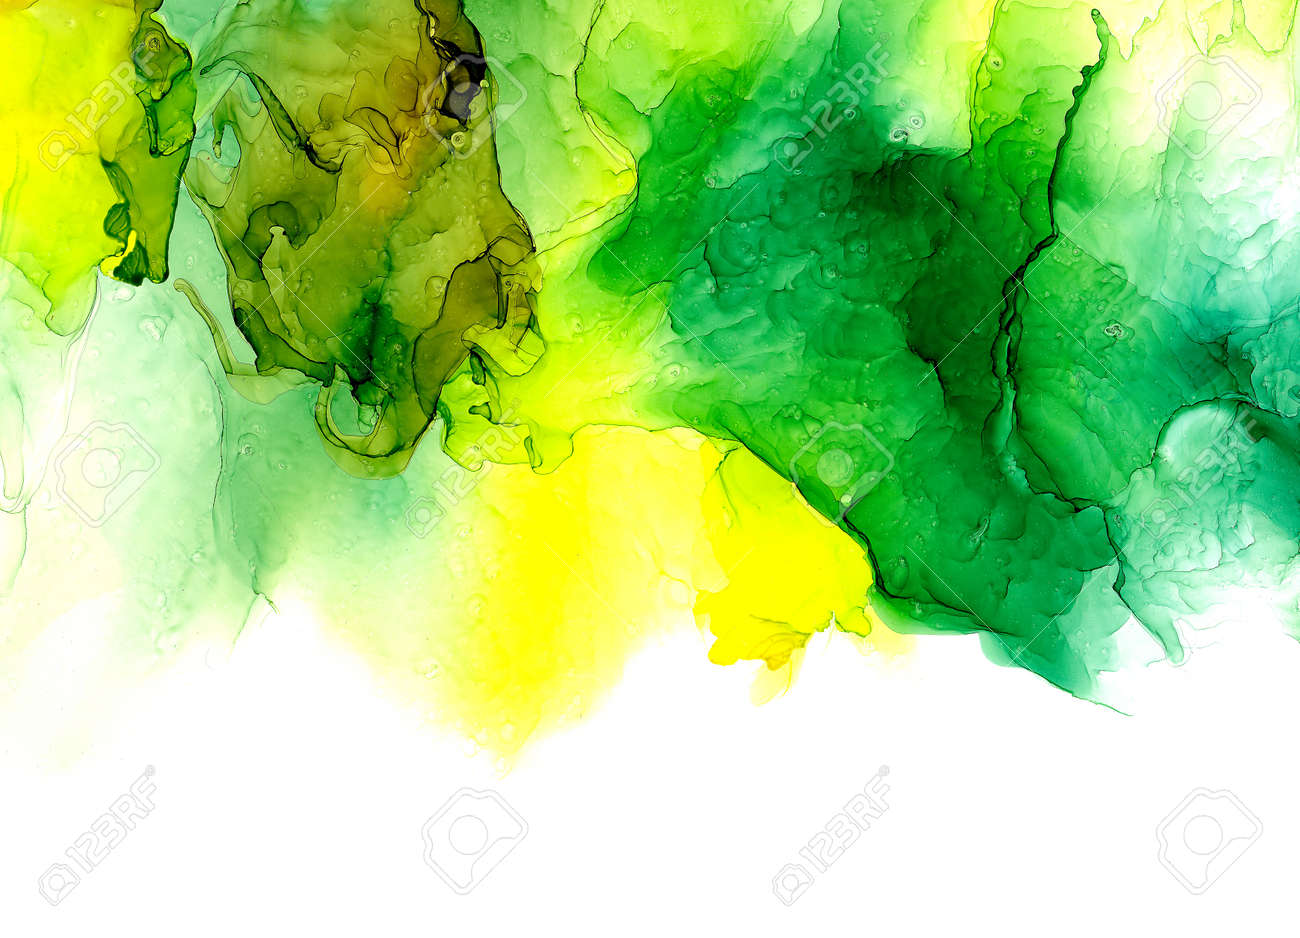 Alcohol ink texture. Fluid ink abstract background. art for design - 112039710